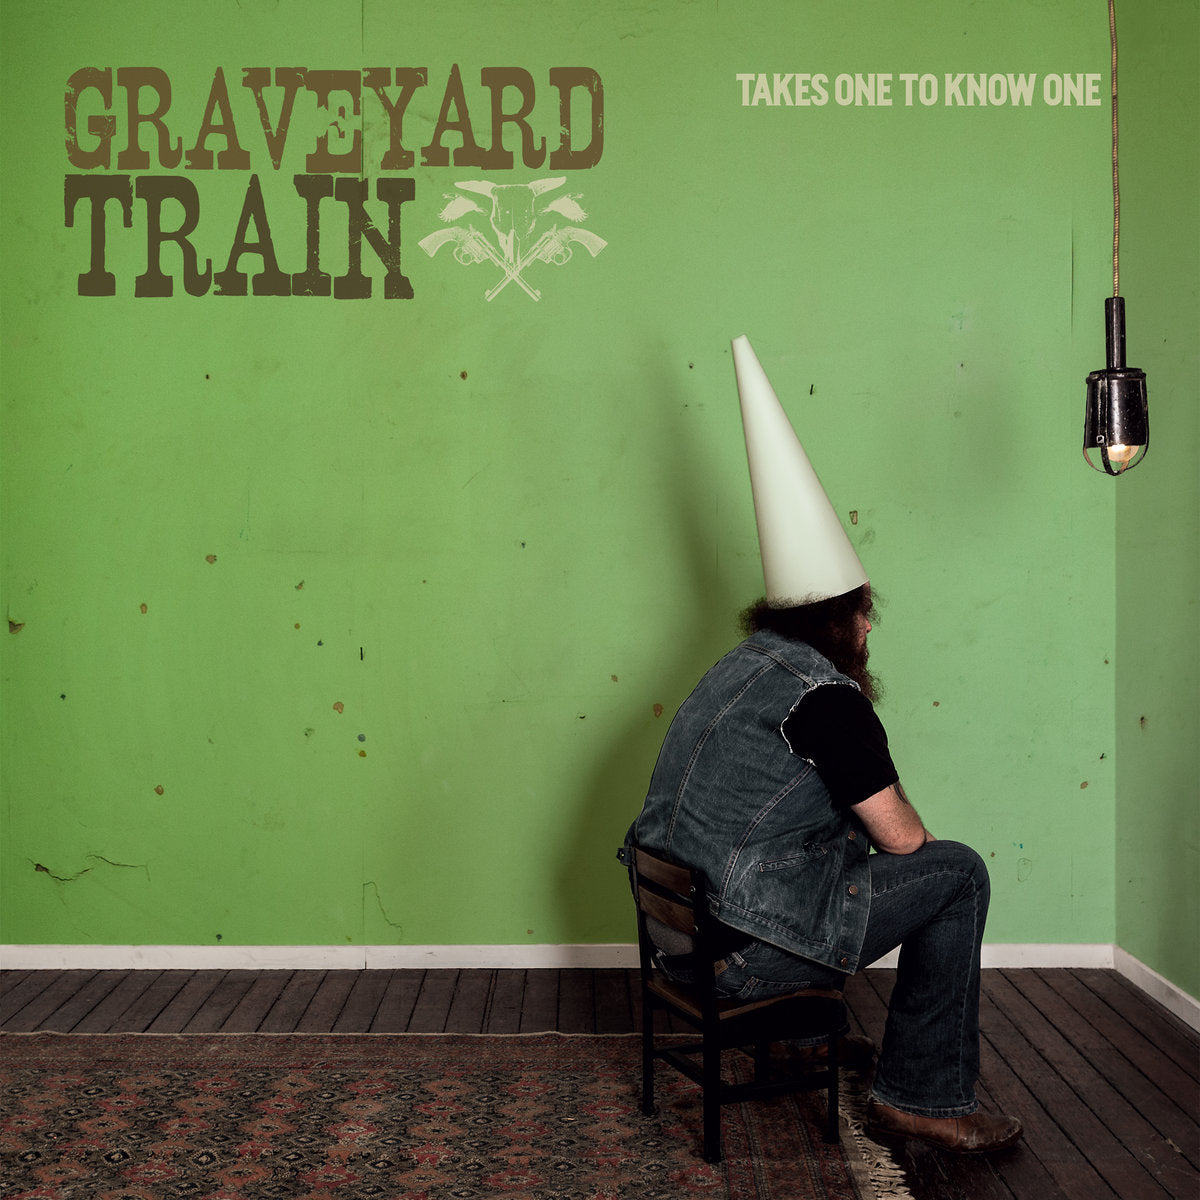 GRAVEYARD TRAIN - TAKES ONE TO KNOW ONE